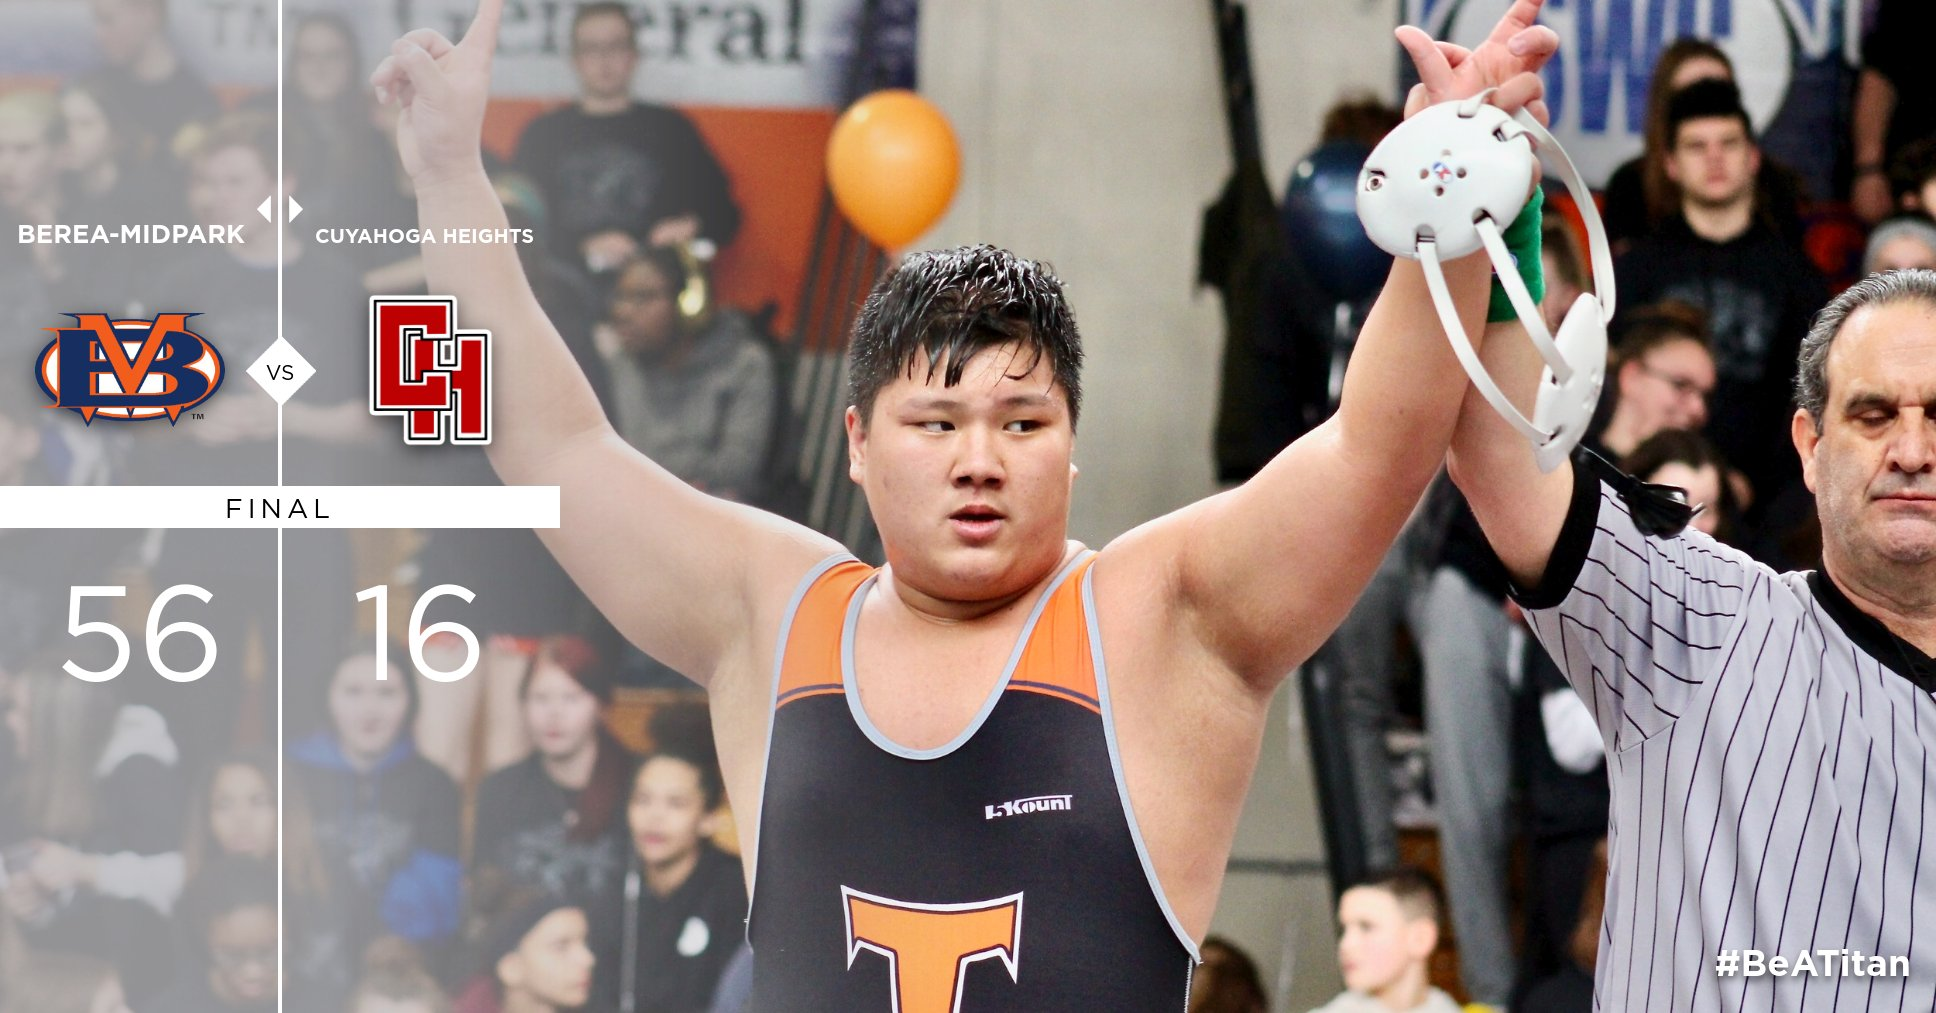 Titans Down Cuyahoga Heights in Third Annual Dual in the School